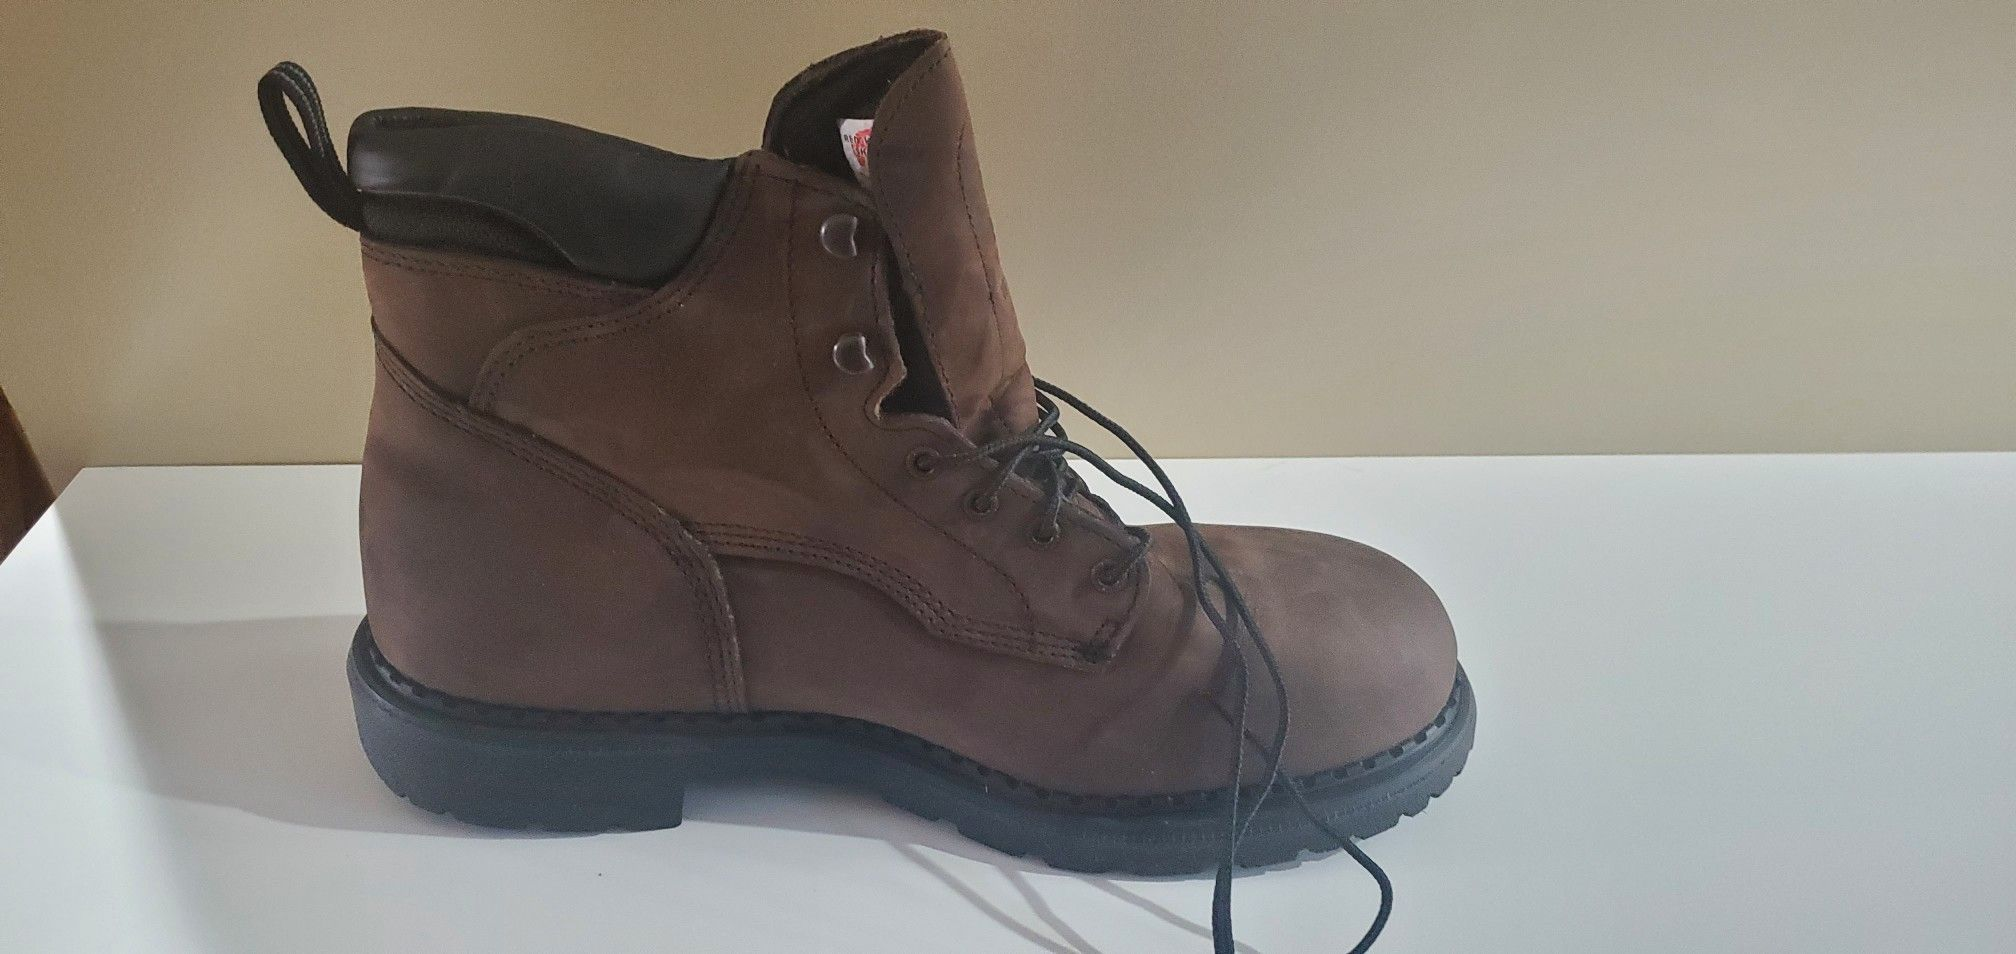 Mens size 12 Red Wing boots. Paid $189. Looking for $80